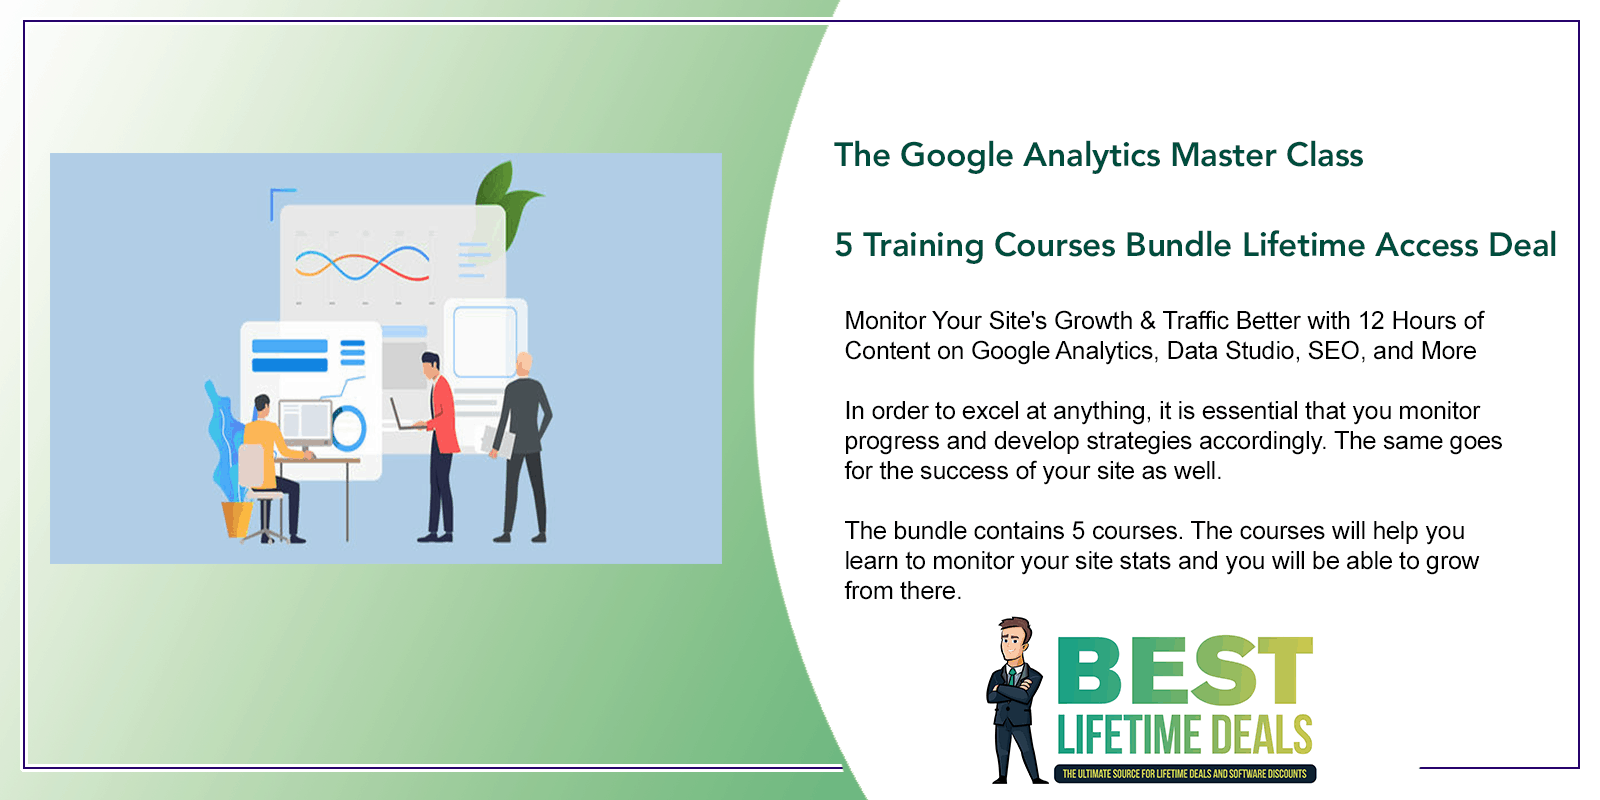 The Google Analytics Master Class 5 Training Courses Bundle Featured Image